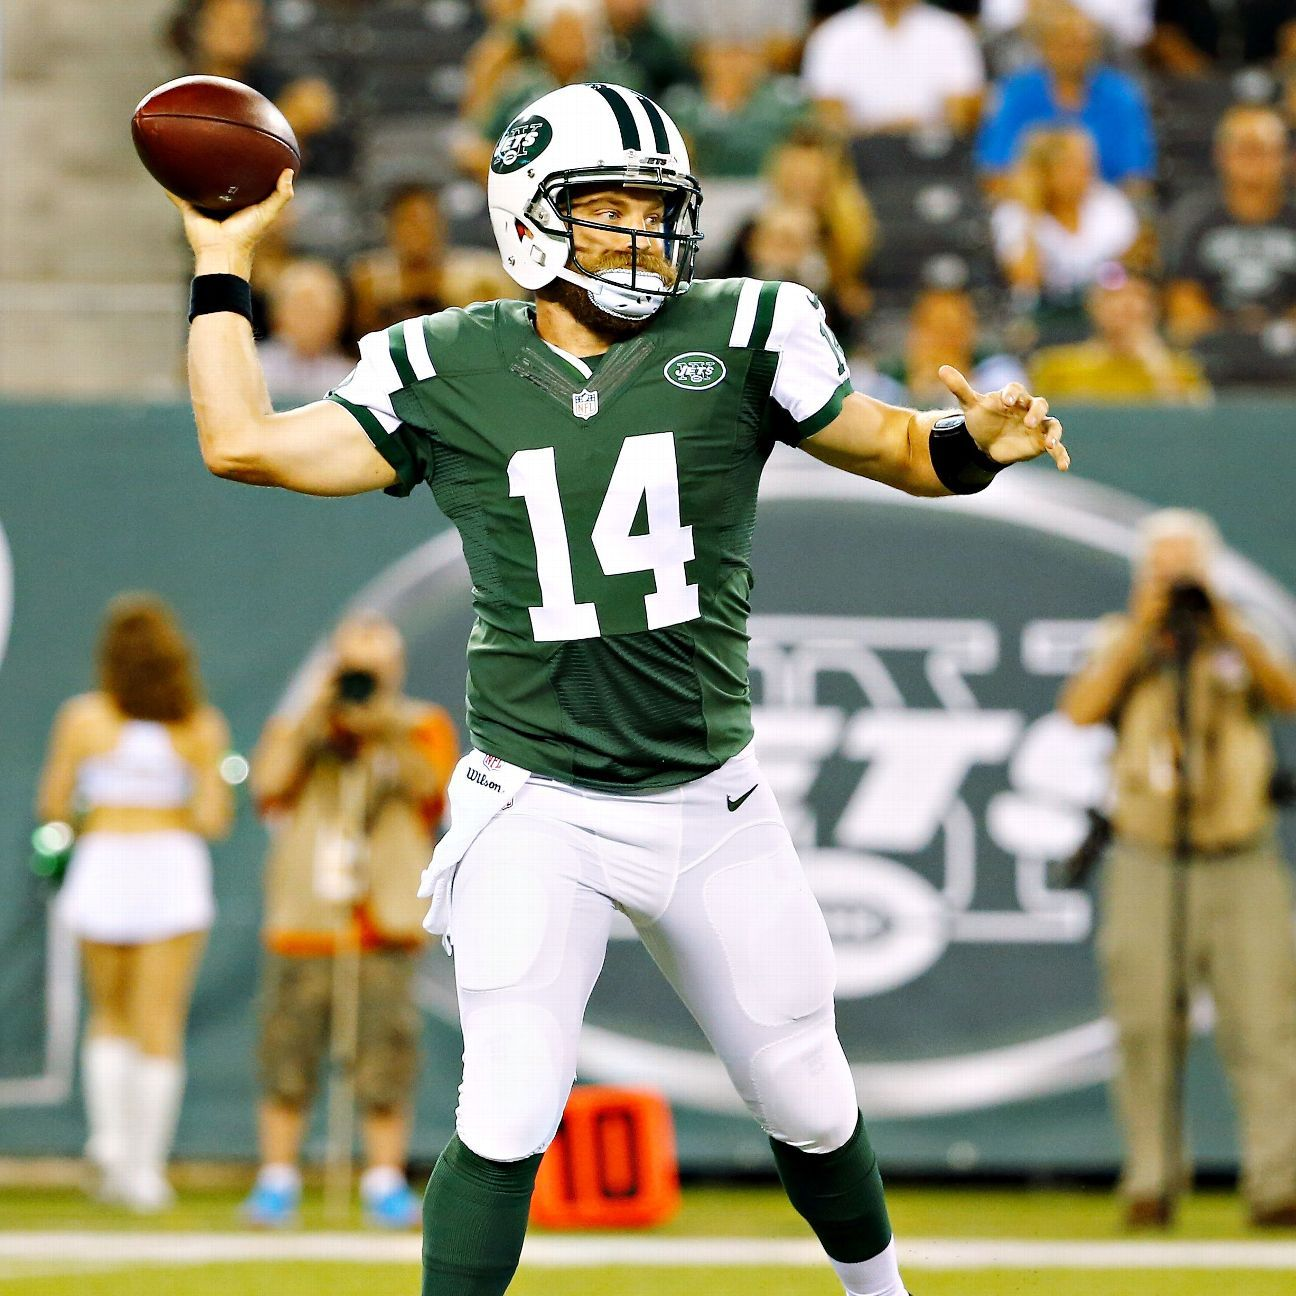 Jets Beat Falcons But Ryan Fitzpatrick Co Struggle In Extended Outing New York Jets Atlanta Falcons Football Nfl